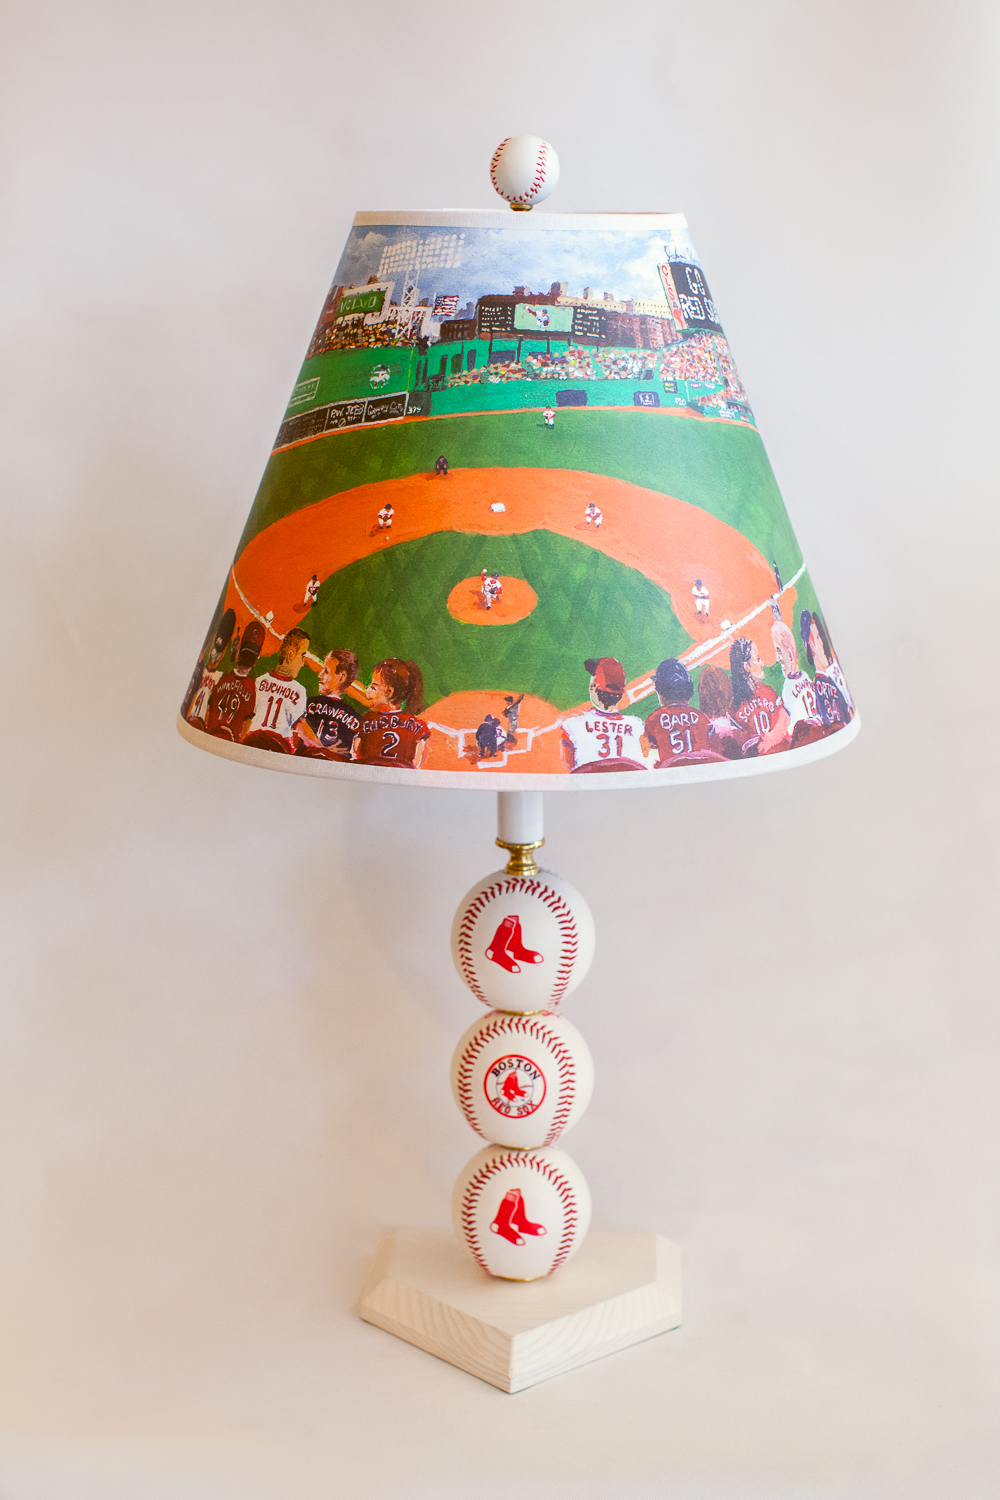 Custom lampshades archives concord lamp and shade boston red sox table lamp with special lampshade mozeypictures Choice Image